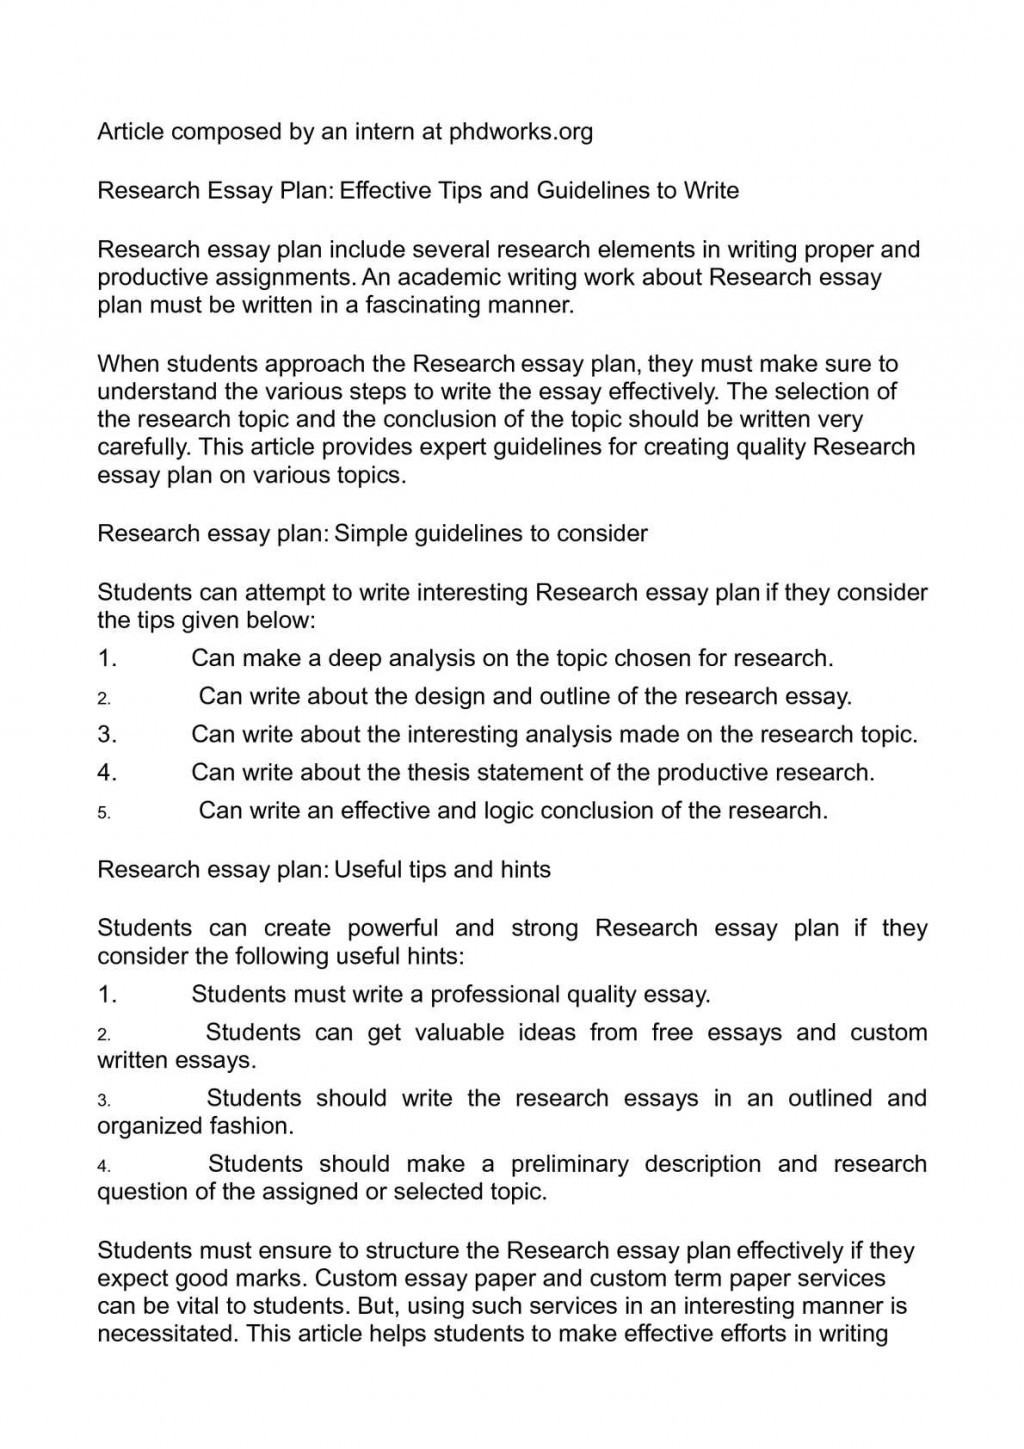 018 Interesting Topics To Write Research Essay On P1 Formidable A Easy Papers Good Psychology Paper Large